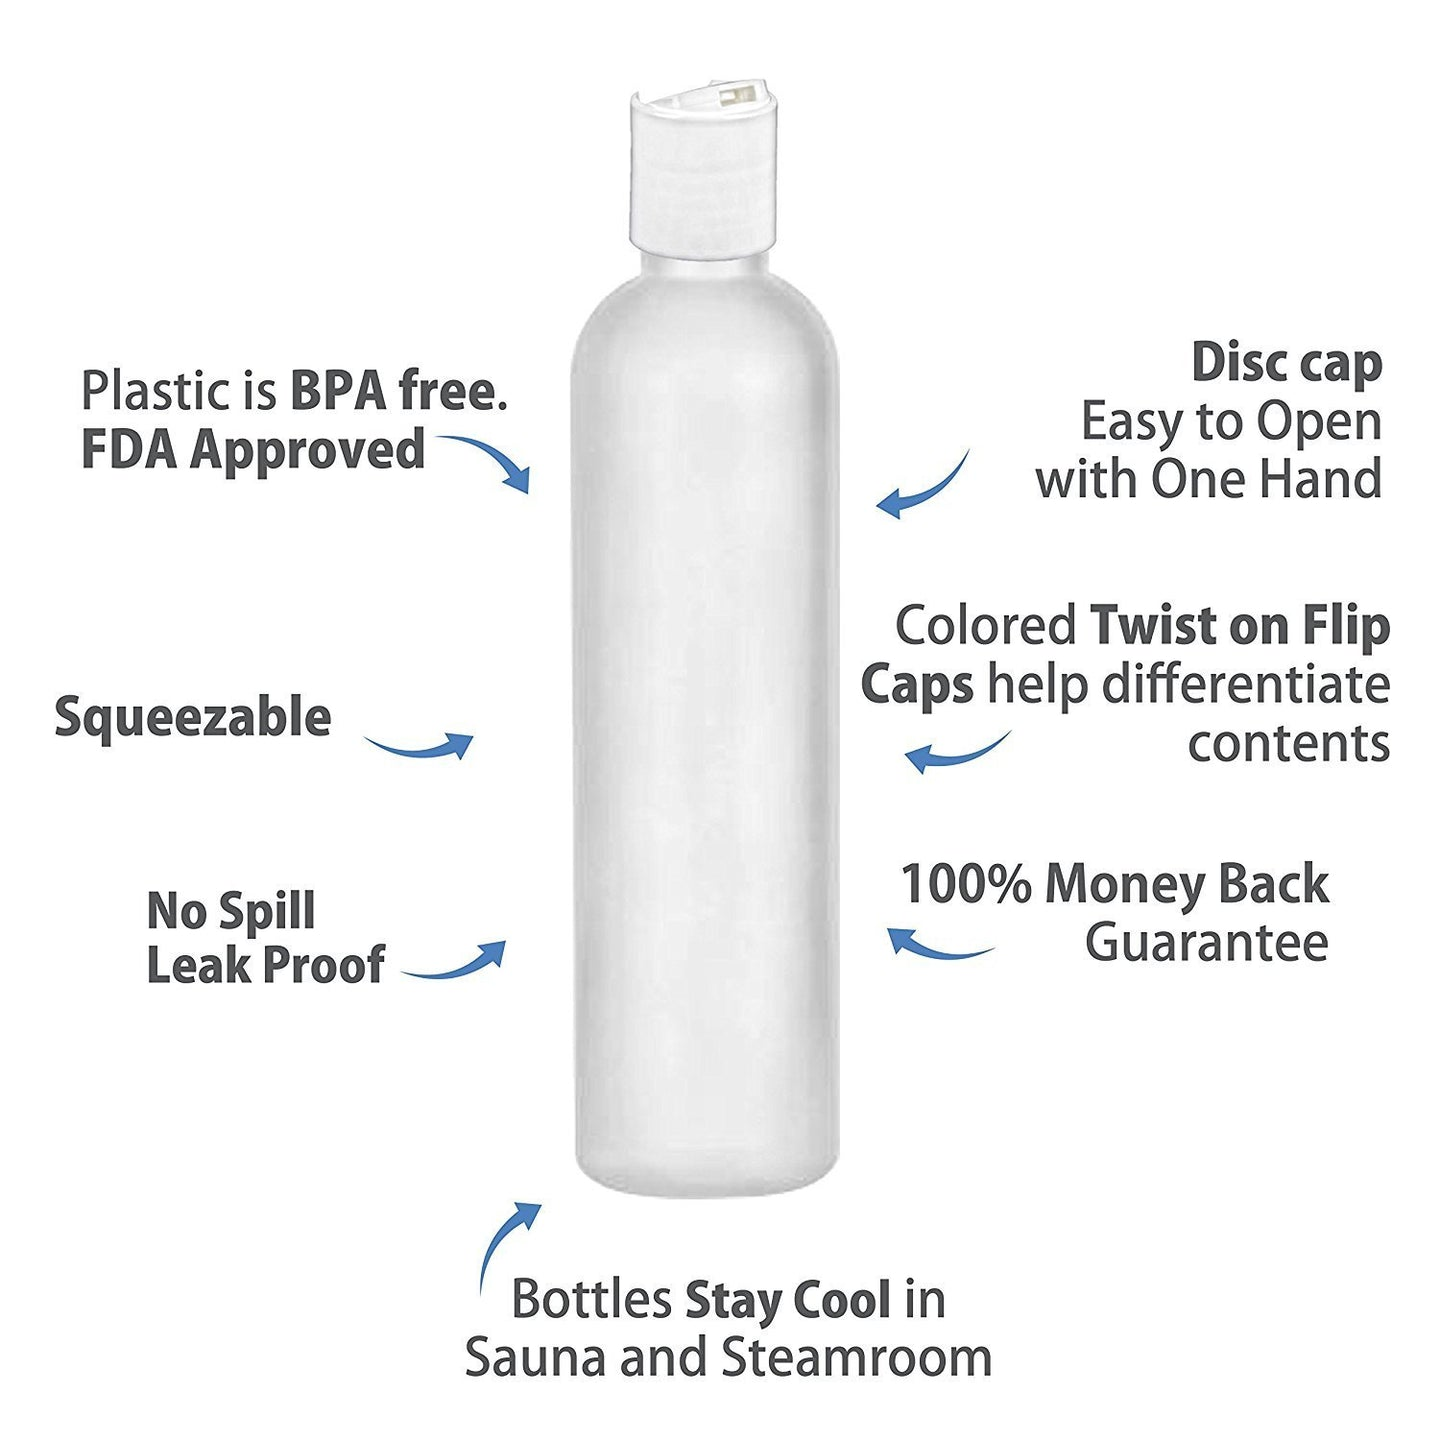 MoYo Natural Labs 8 oz Travel Bottles, Empty Travel Containers with Disc Caps, BPA Free HDPE Plastic Squeezable Toiletry/Cosmetic Bottles (Neck 24-410) (Pack of 4, HDPE Translucent White)